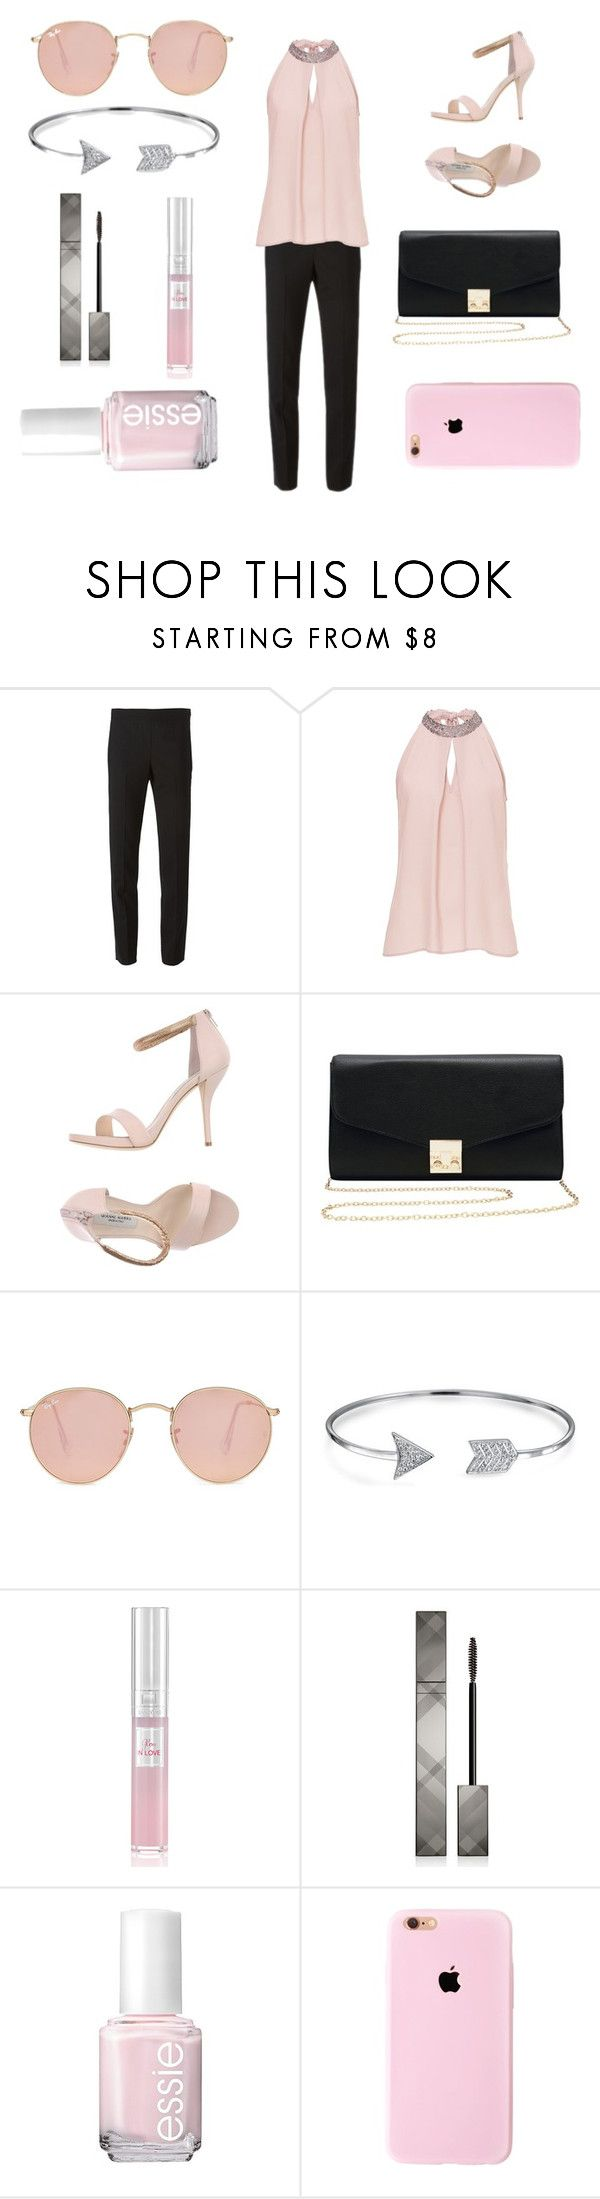 """Pink & Black"" by tayloremilia13 on Polyvore featuring Mode, DKNY, Vera Mont, Gianni Marra, M&Co, Ray-Ban, Bling Jewelry, Lancôme, Burberry und Essie"